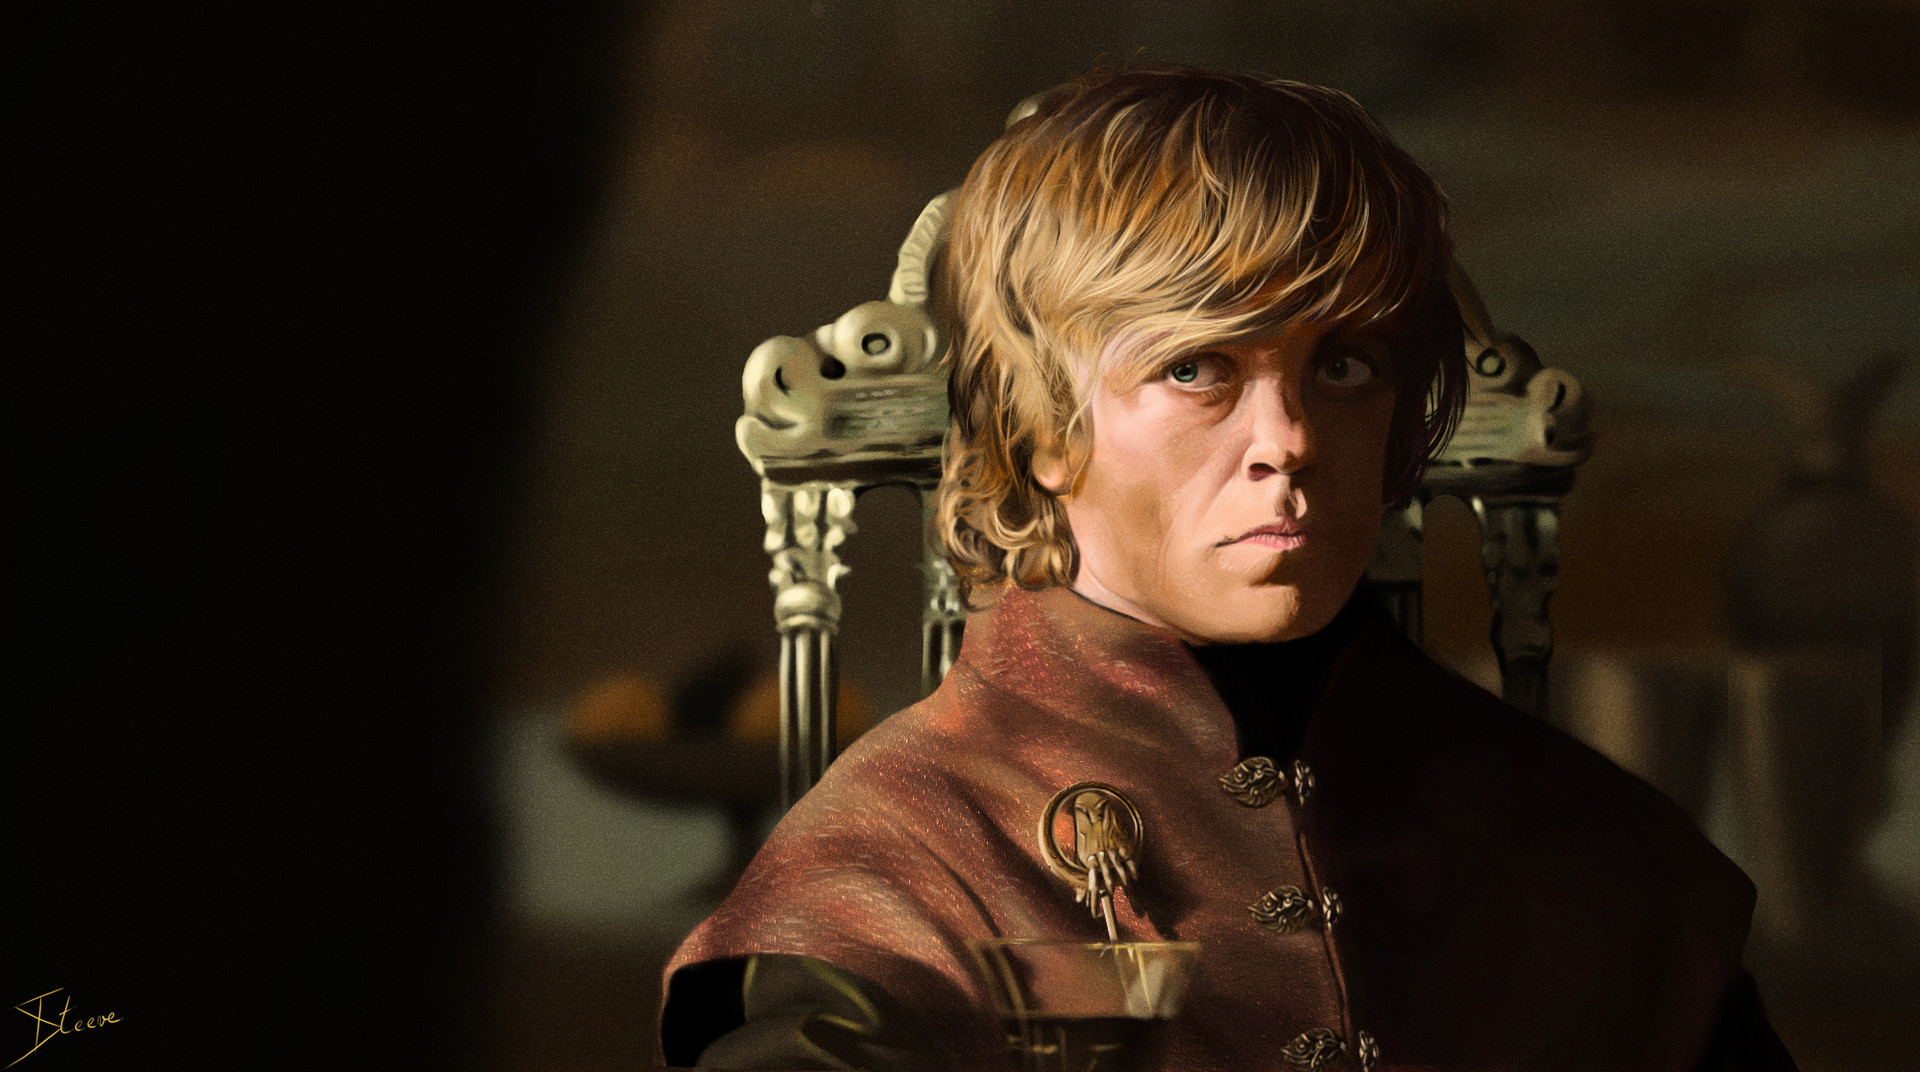 Galerie de Steeve_Endo Steeve-endo-tyrion-game-of-thrones-40